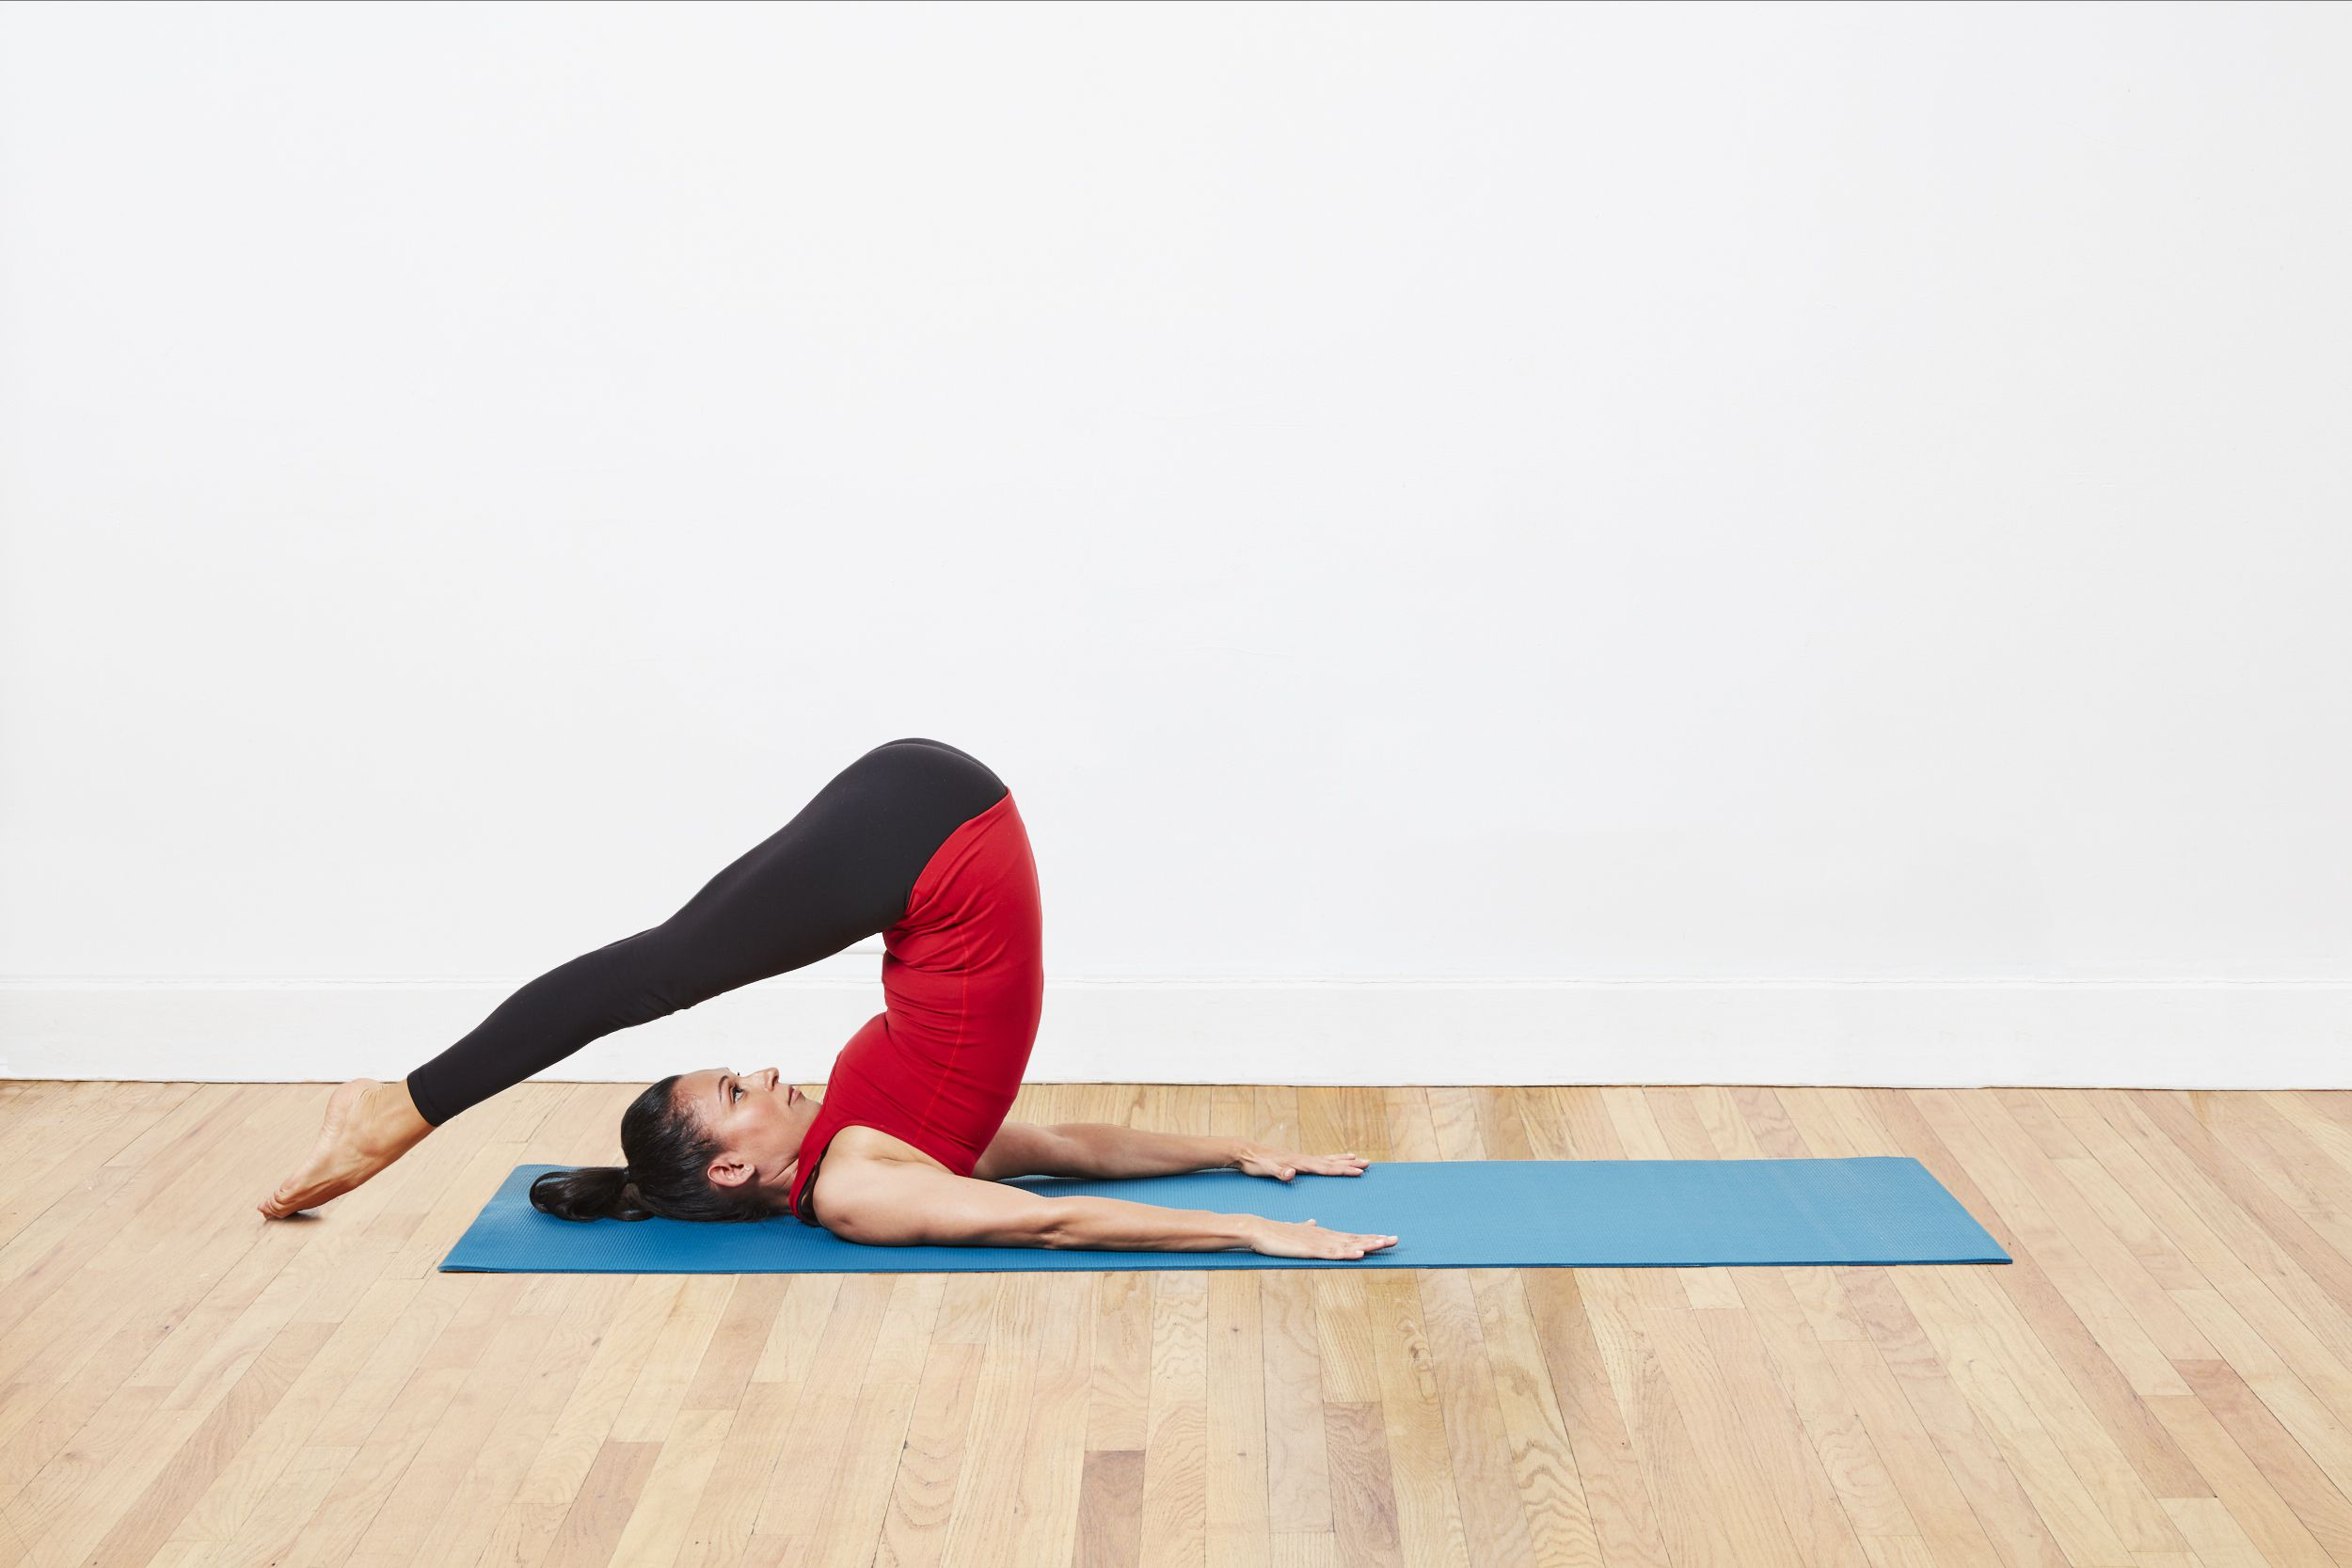 How To Do The Roll Over In Pilates